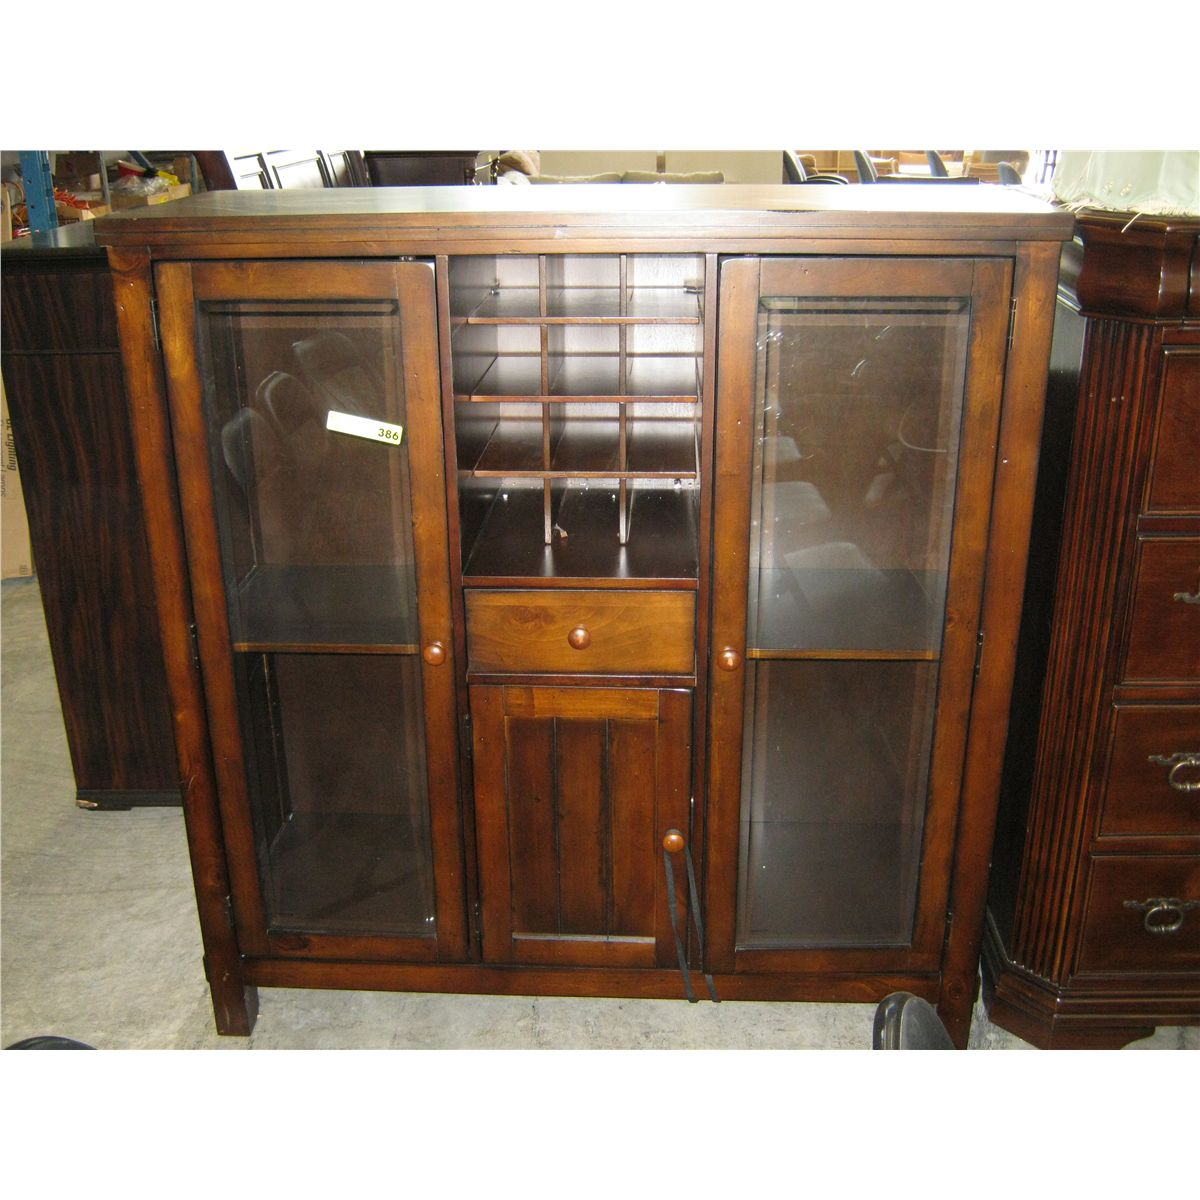 Cabinet with a built in wine rack & glass doors